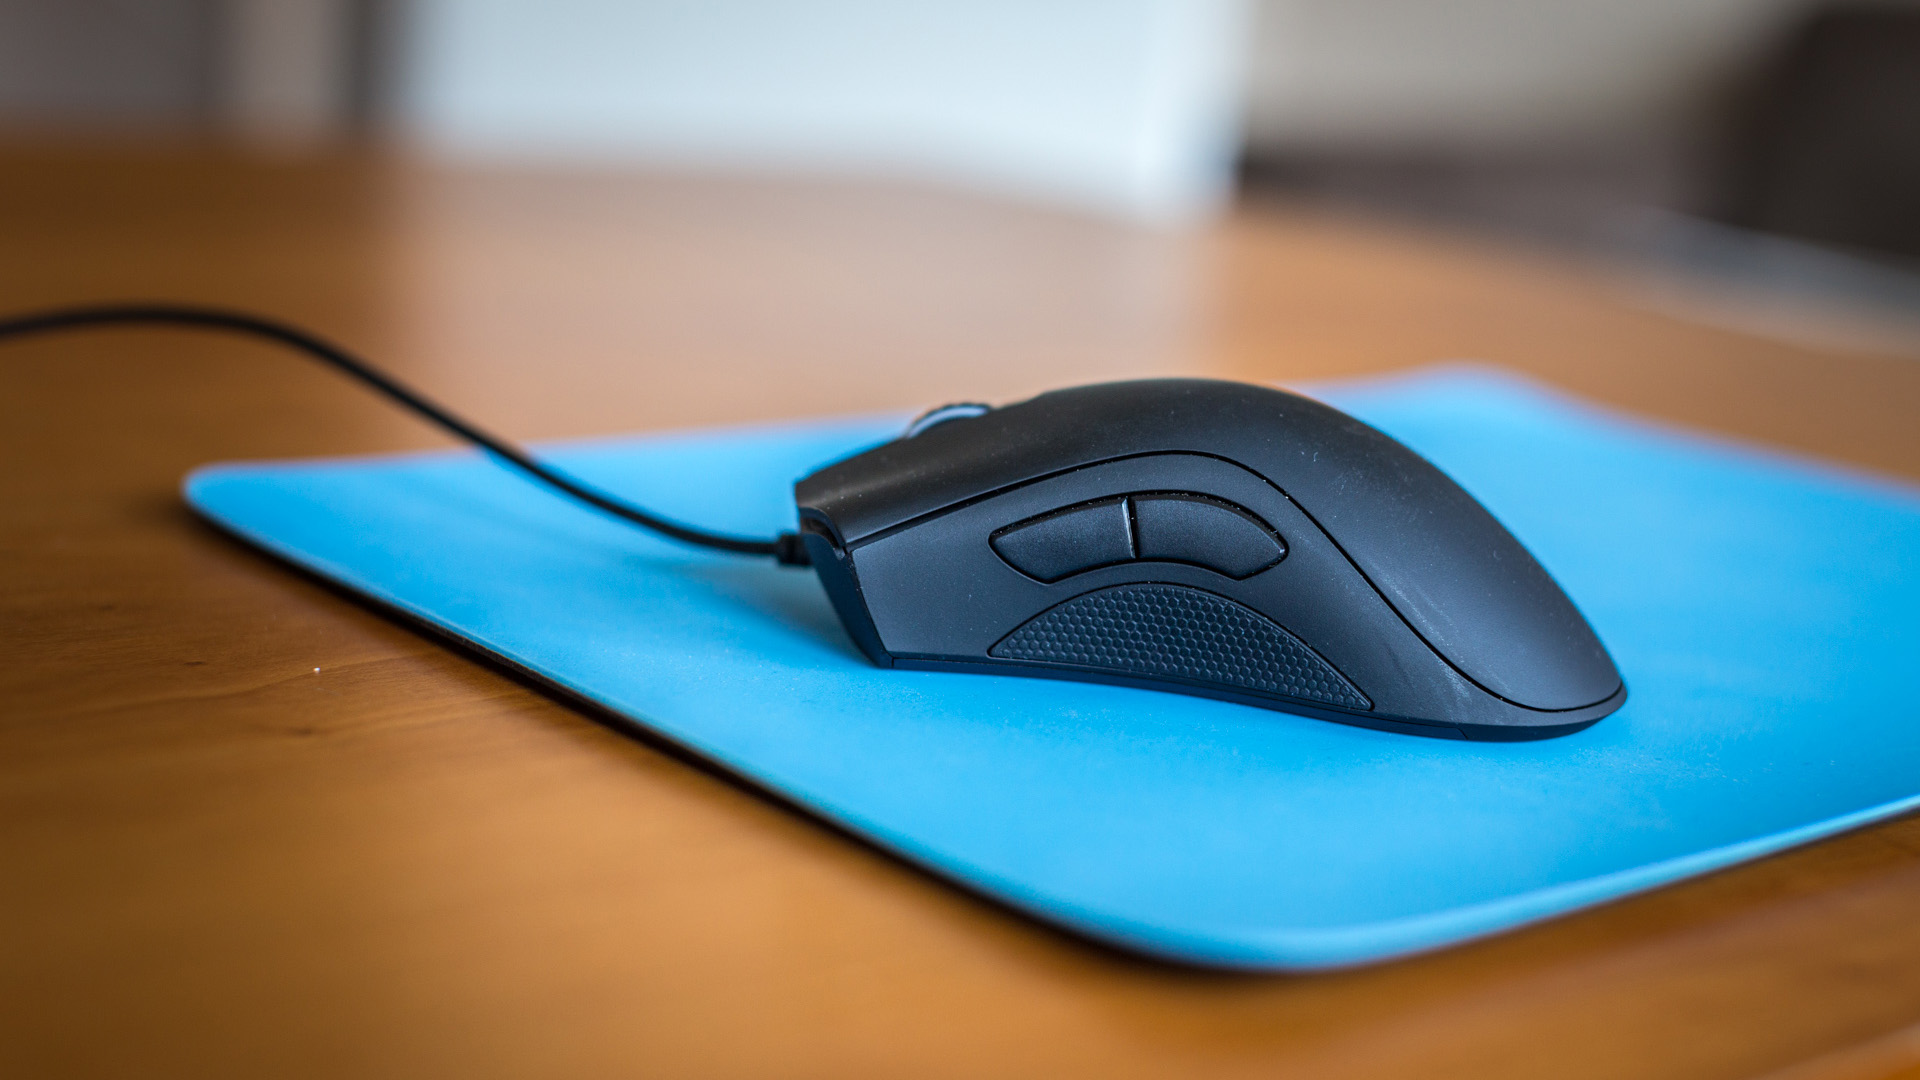 The Best PC Gaming Mouse Today - Tested